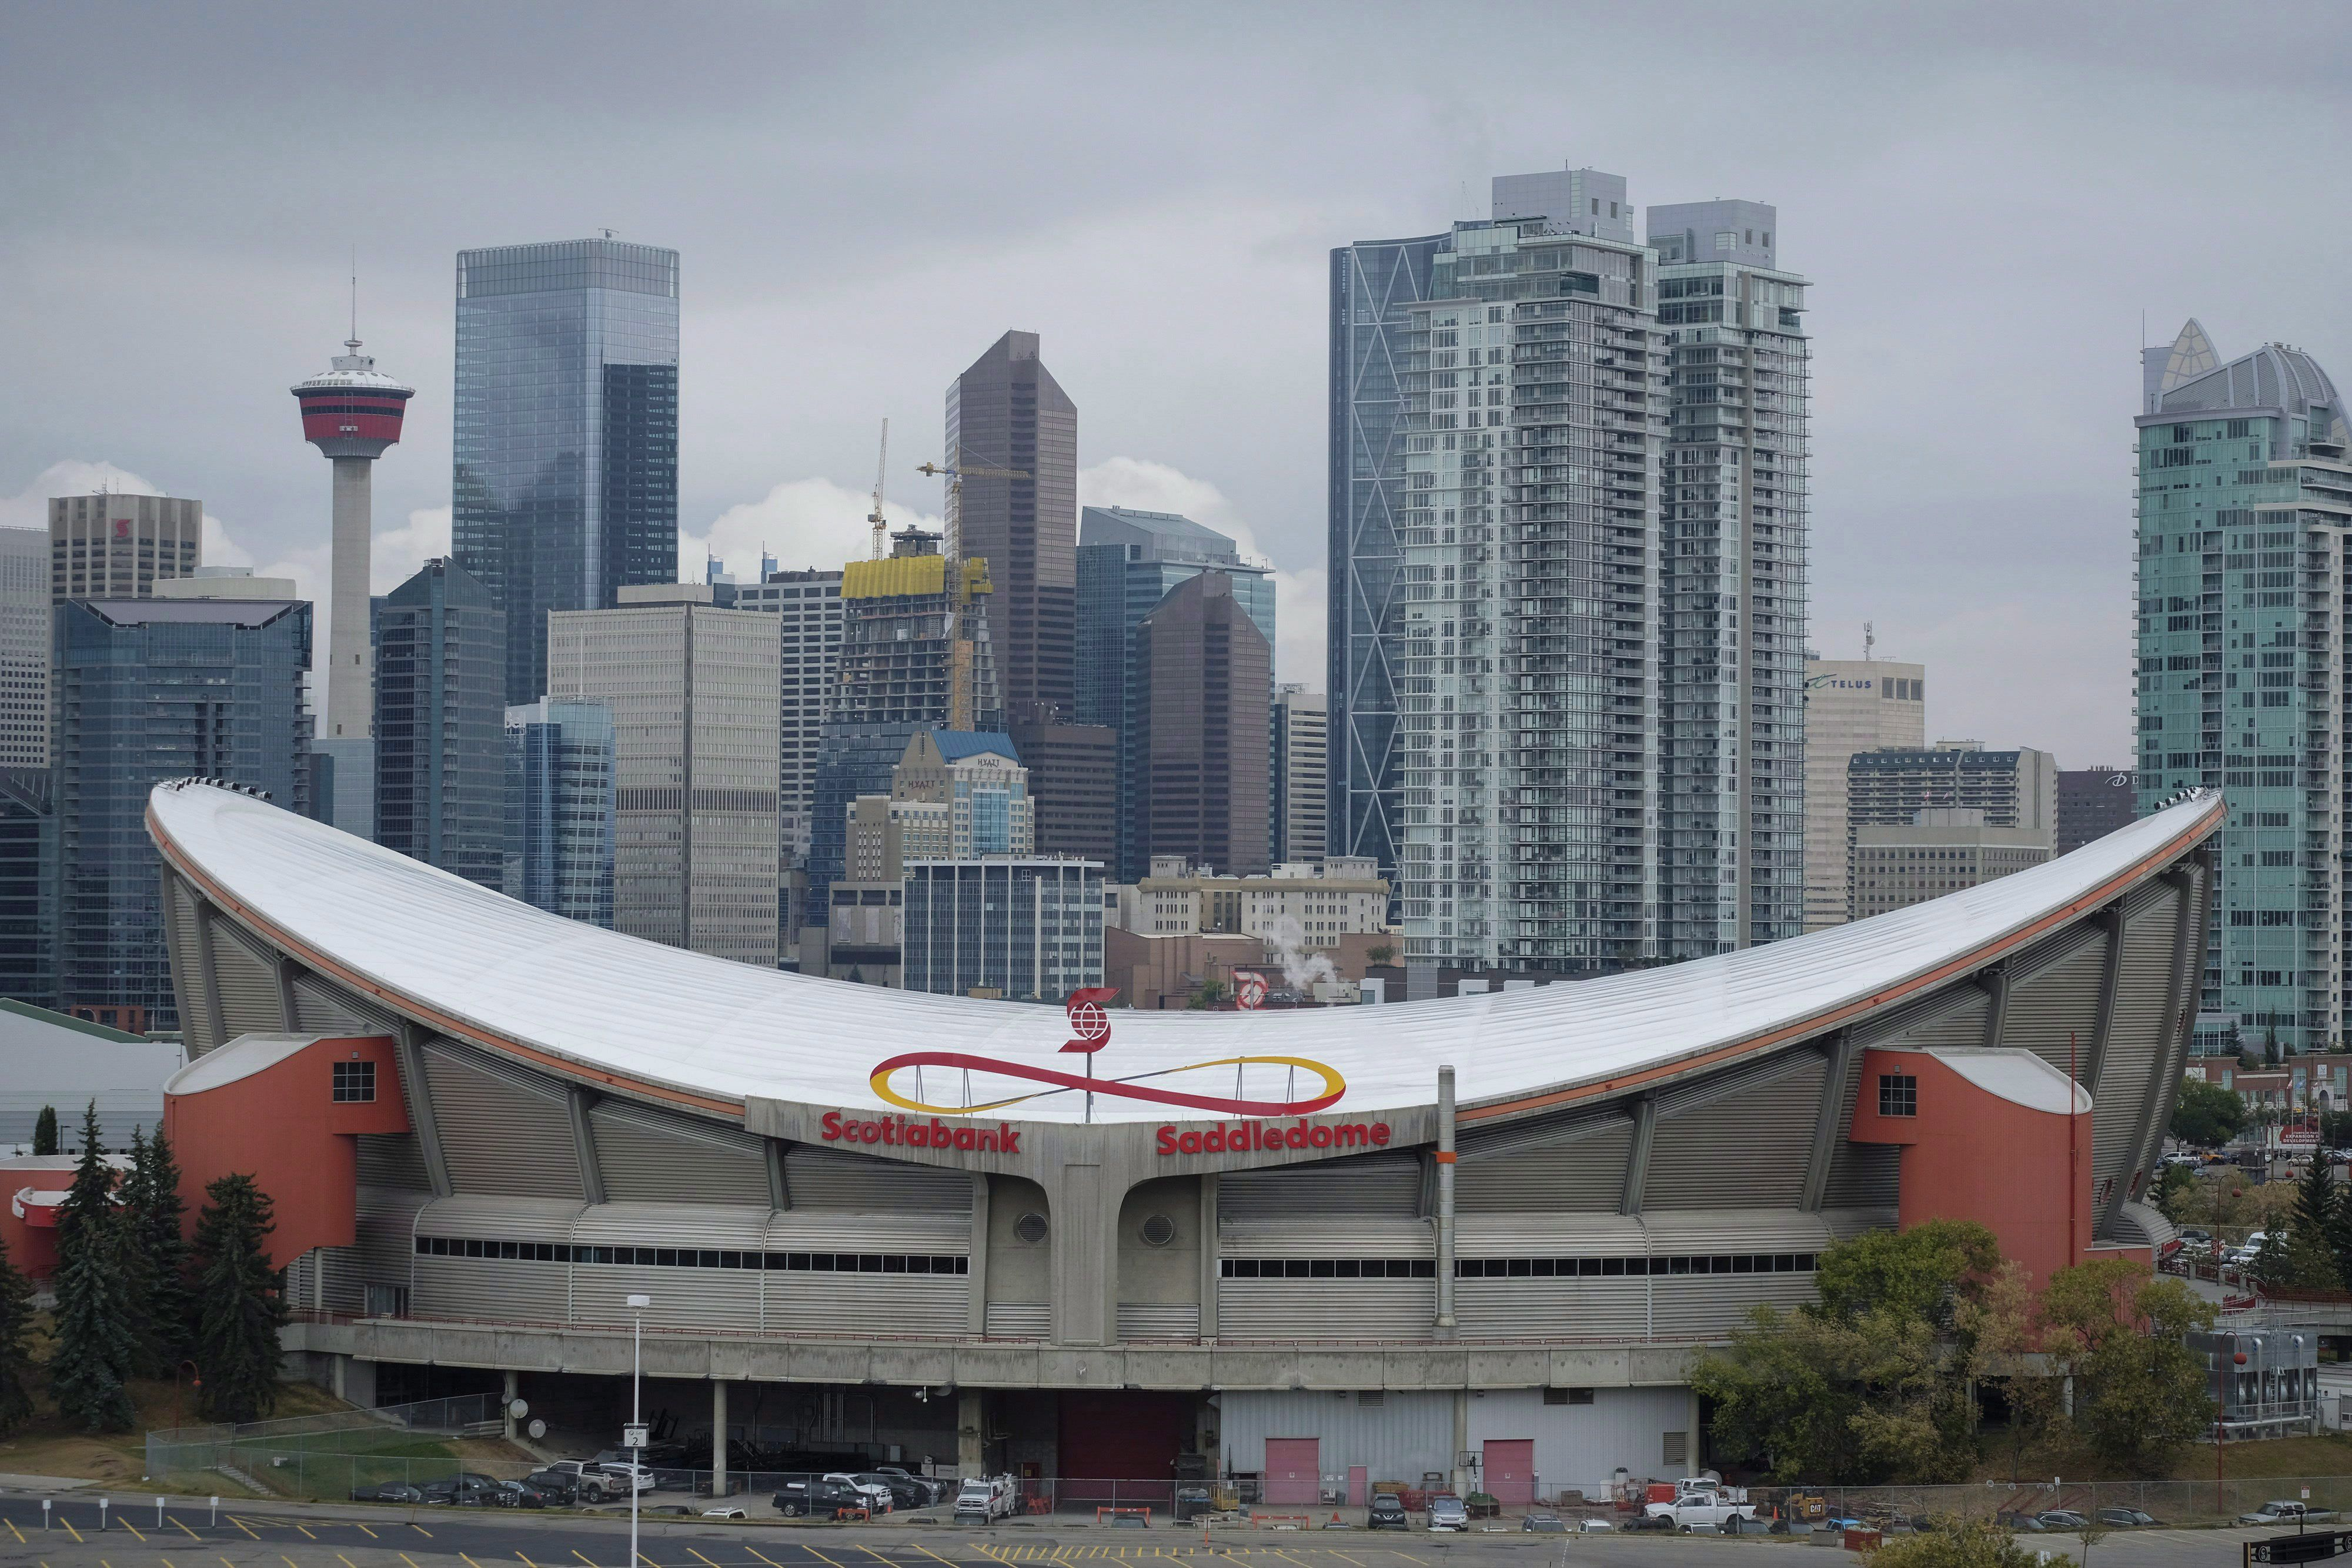 Calgary's new arena deal was driven by politics, not economics